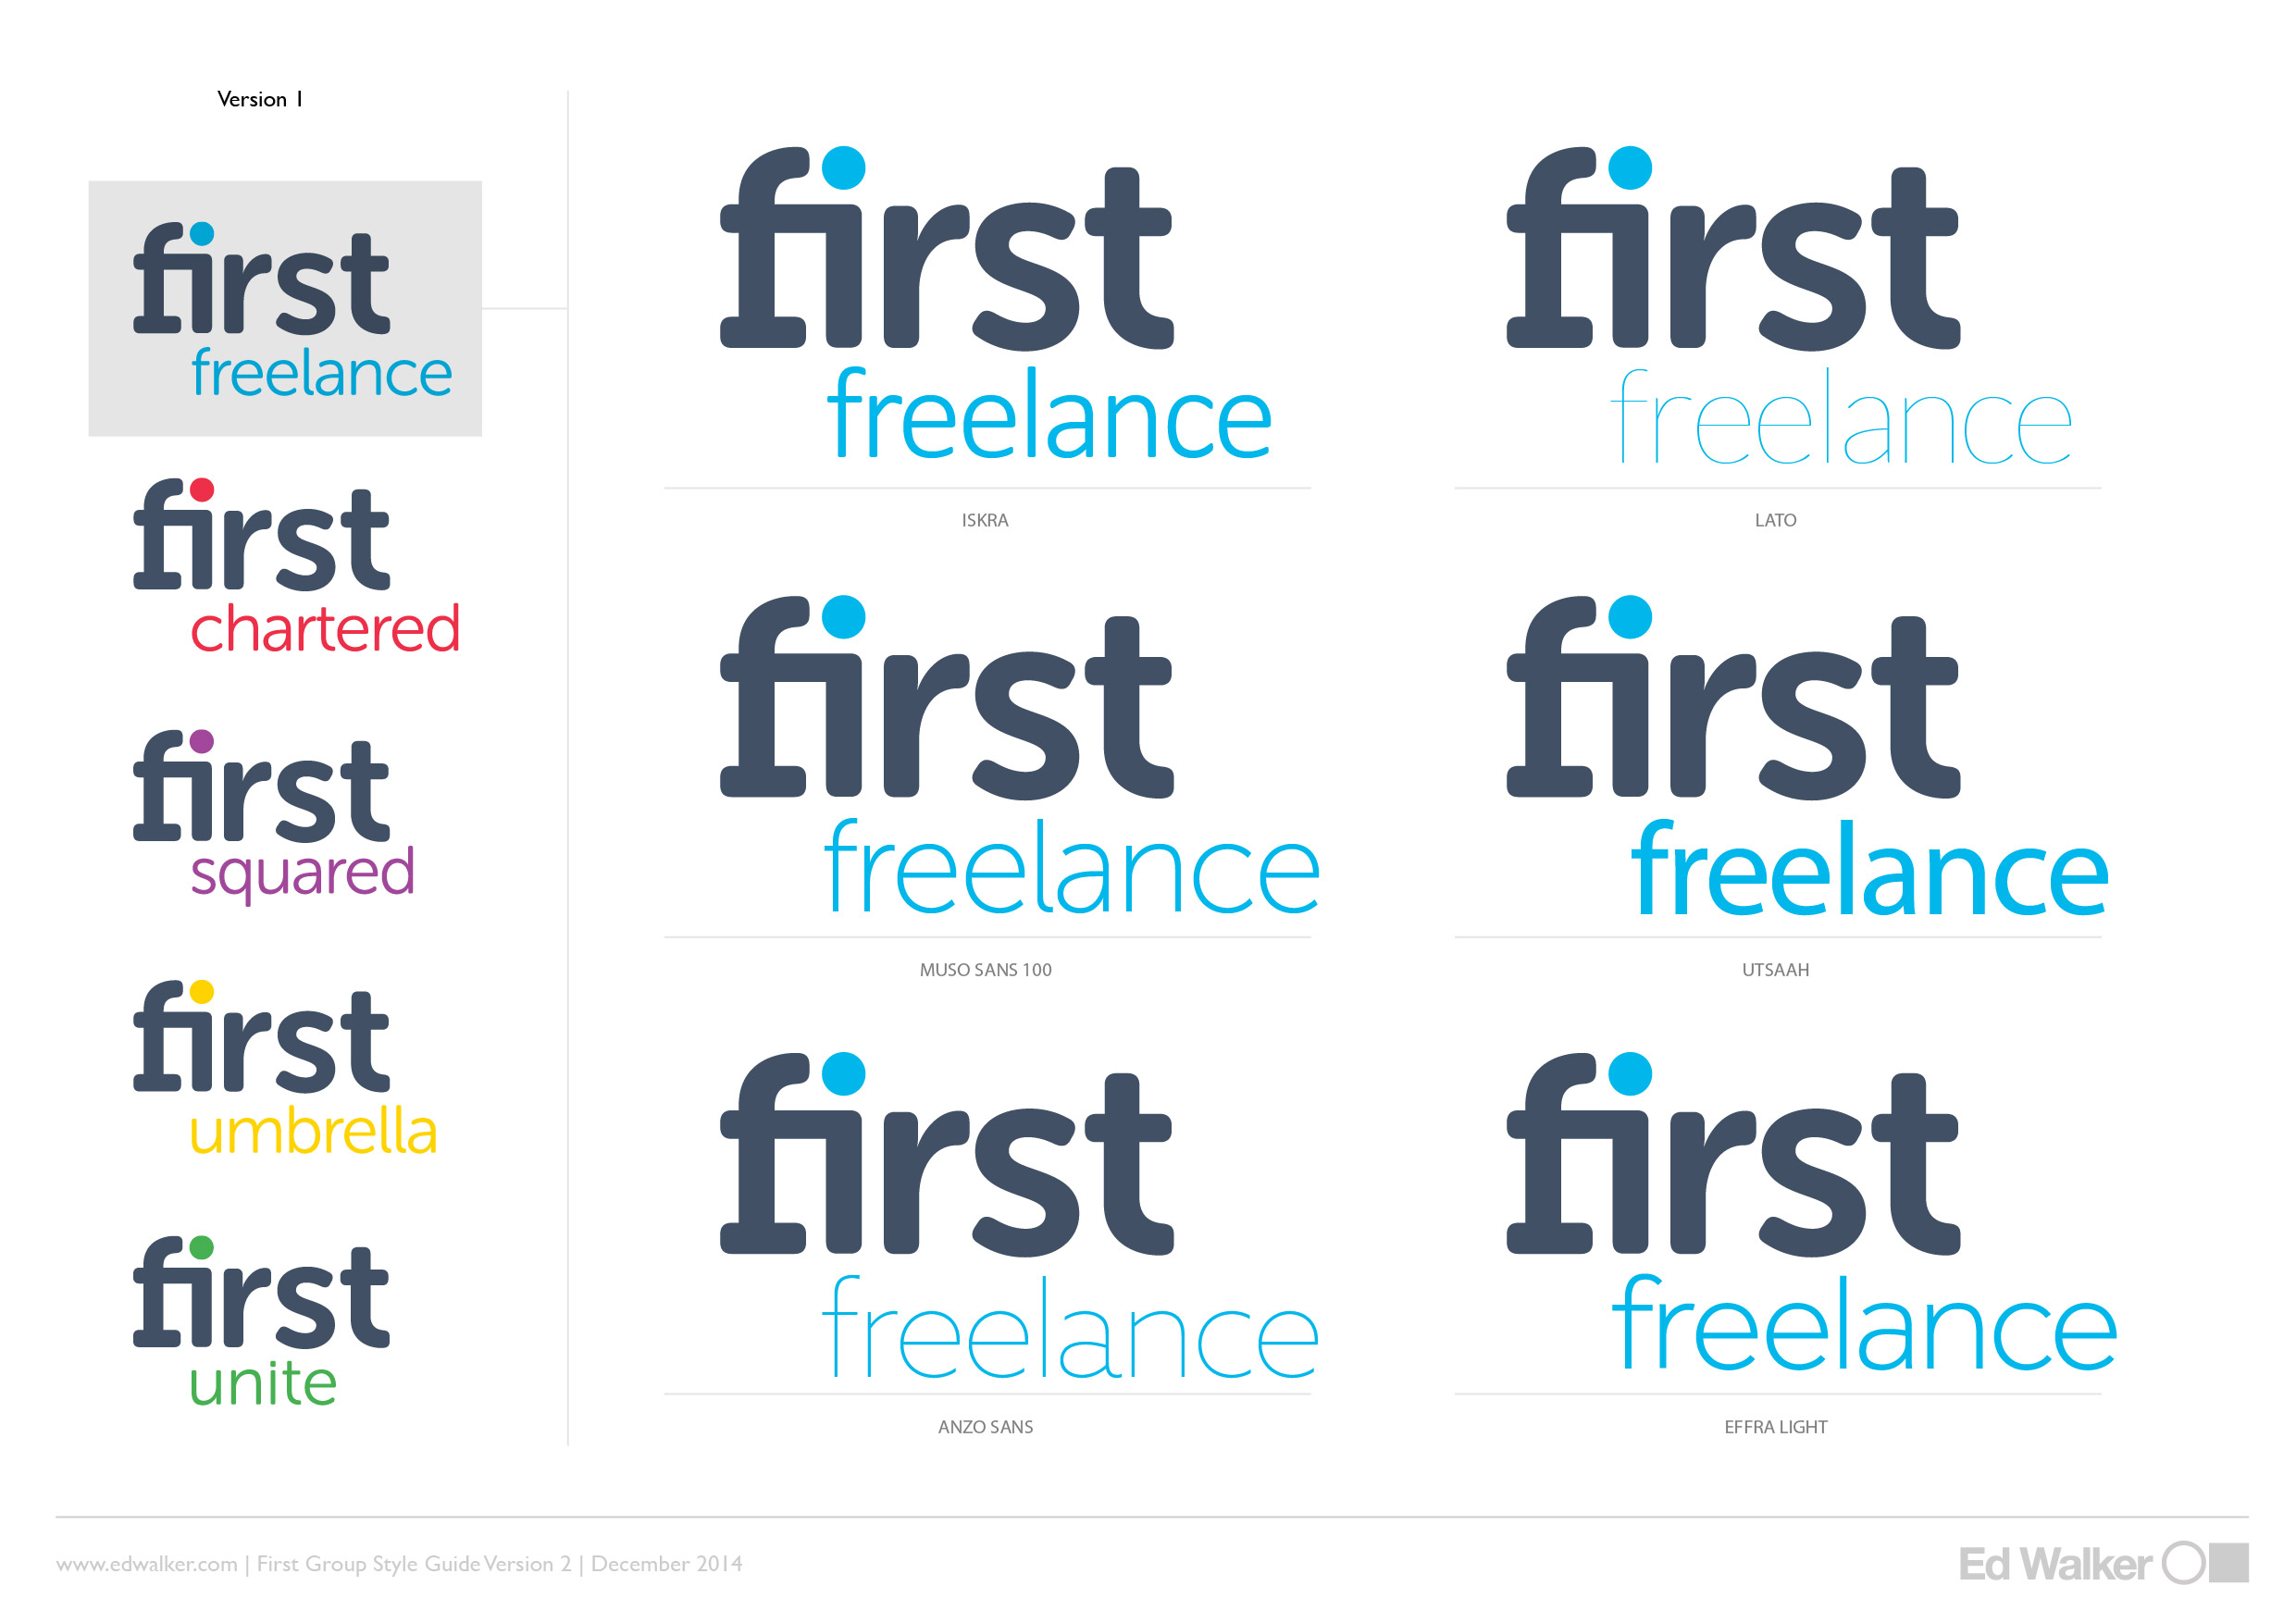 Logo variations for First Freelance